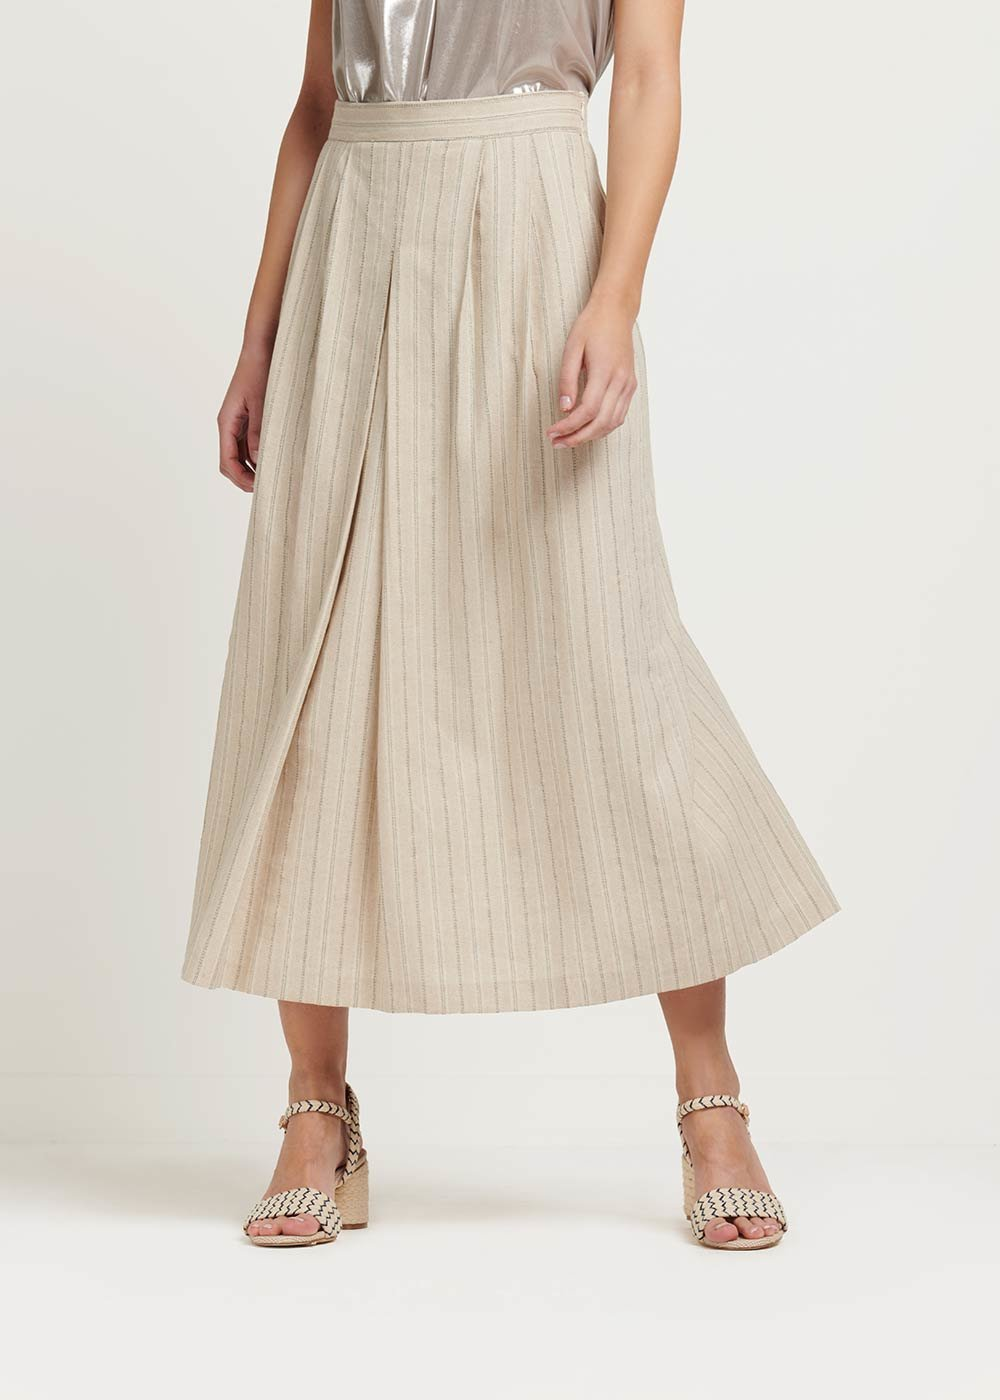 Gioia pinstriped skirt - Beige \ Silver Stripes - Woman